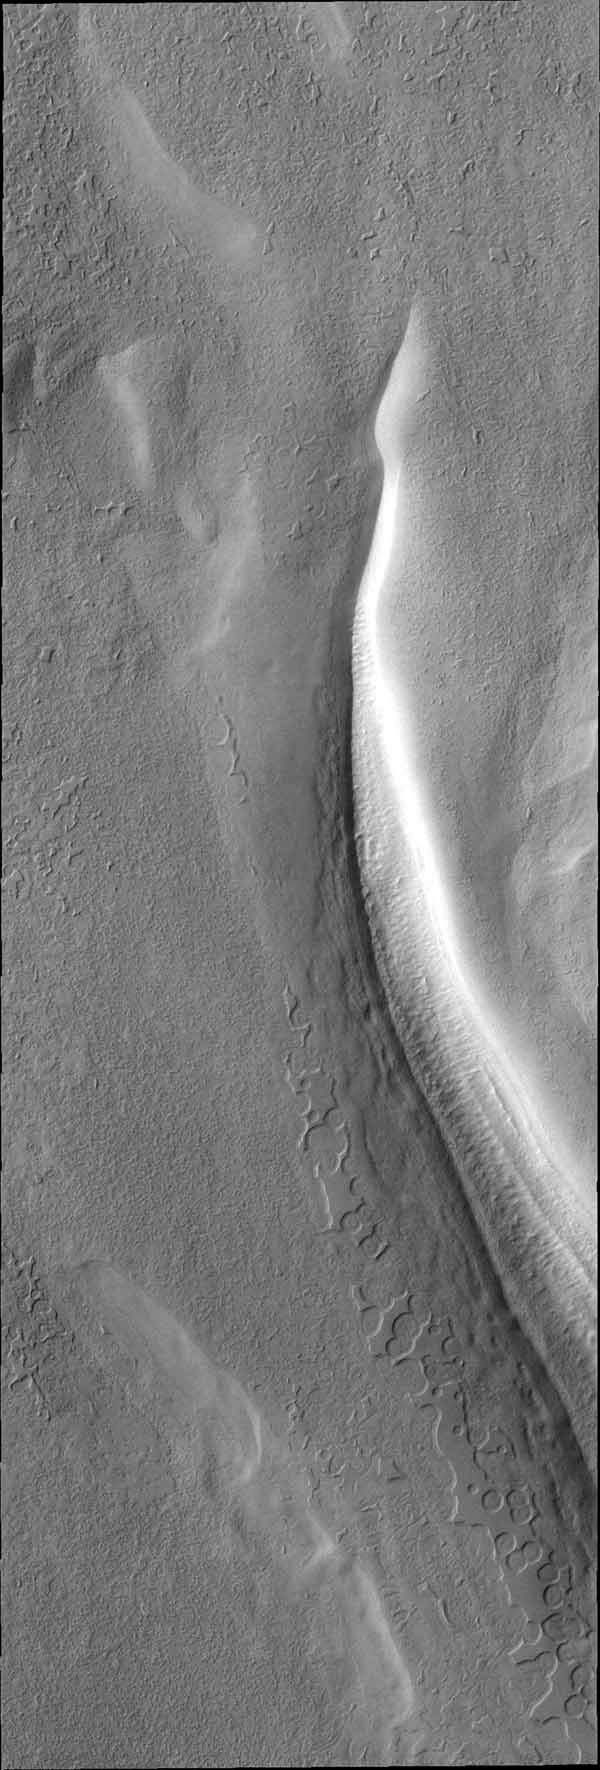 This image from NASA's Mars Odyssey is of the south polar cap shows the tip of a trough and the surface surrounding it.